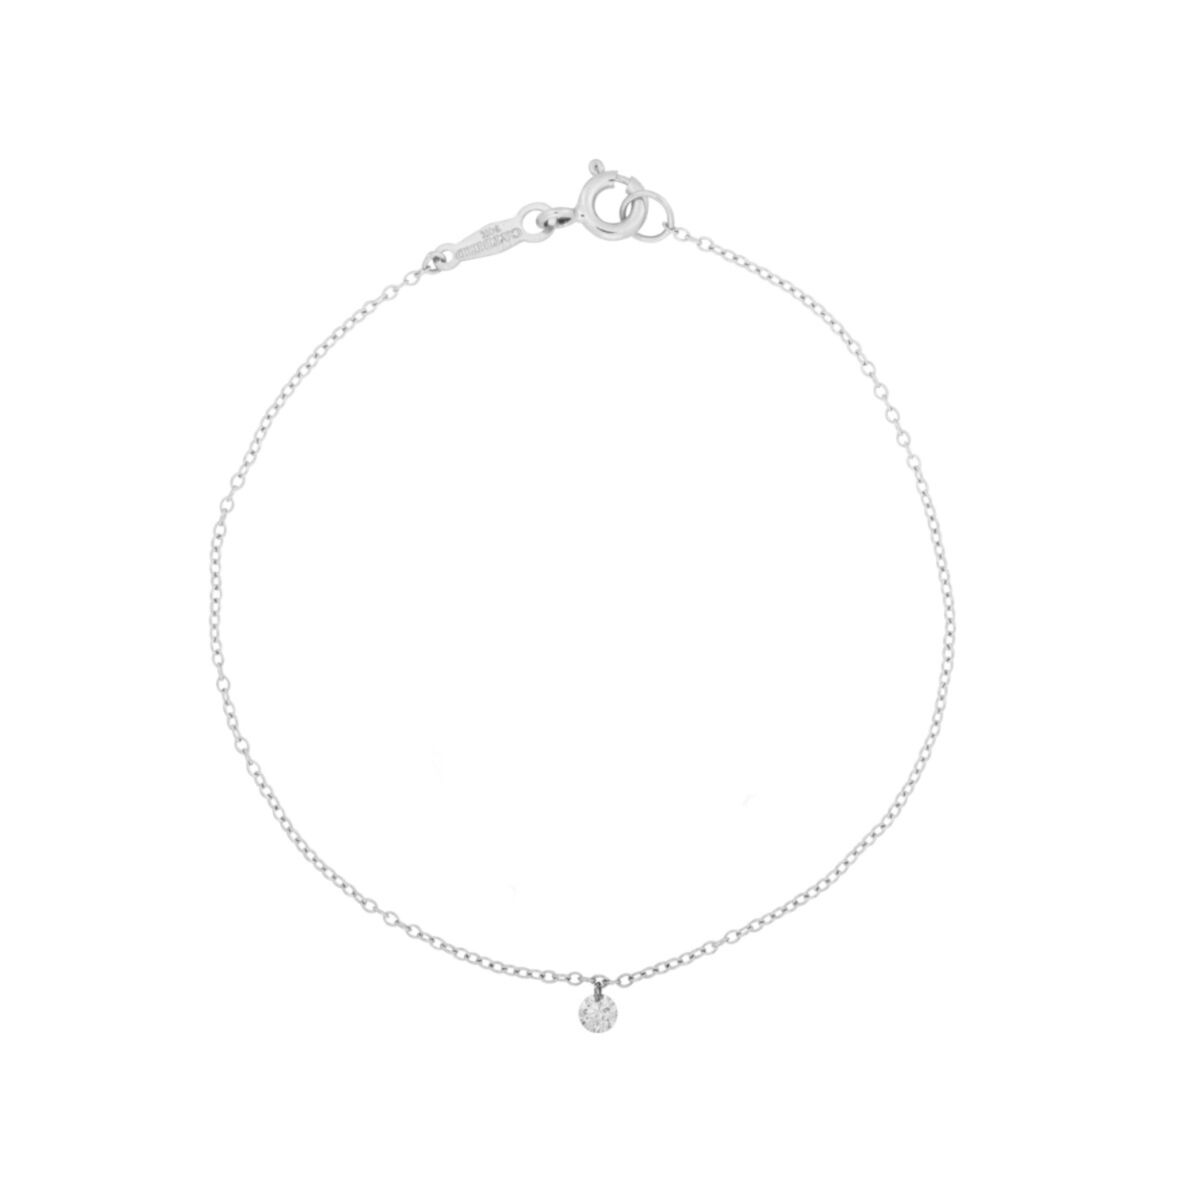 Diamond Pinprick Bracelet, white gold image